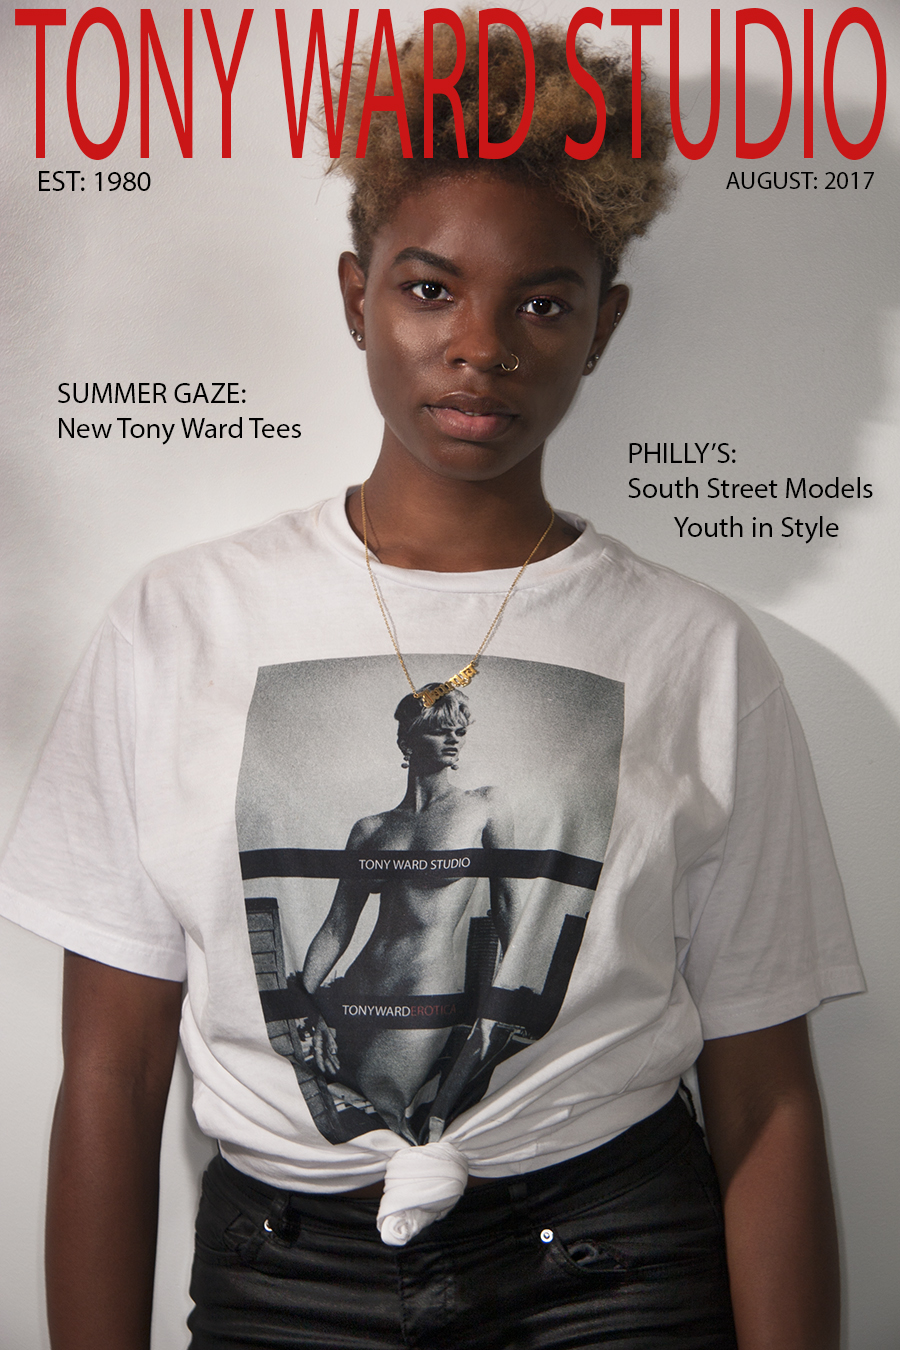 Tony_Ward_Studio_August_2017_homepage_model_Jamya_Monet_modeling_erotica_t-Shirt